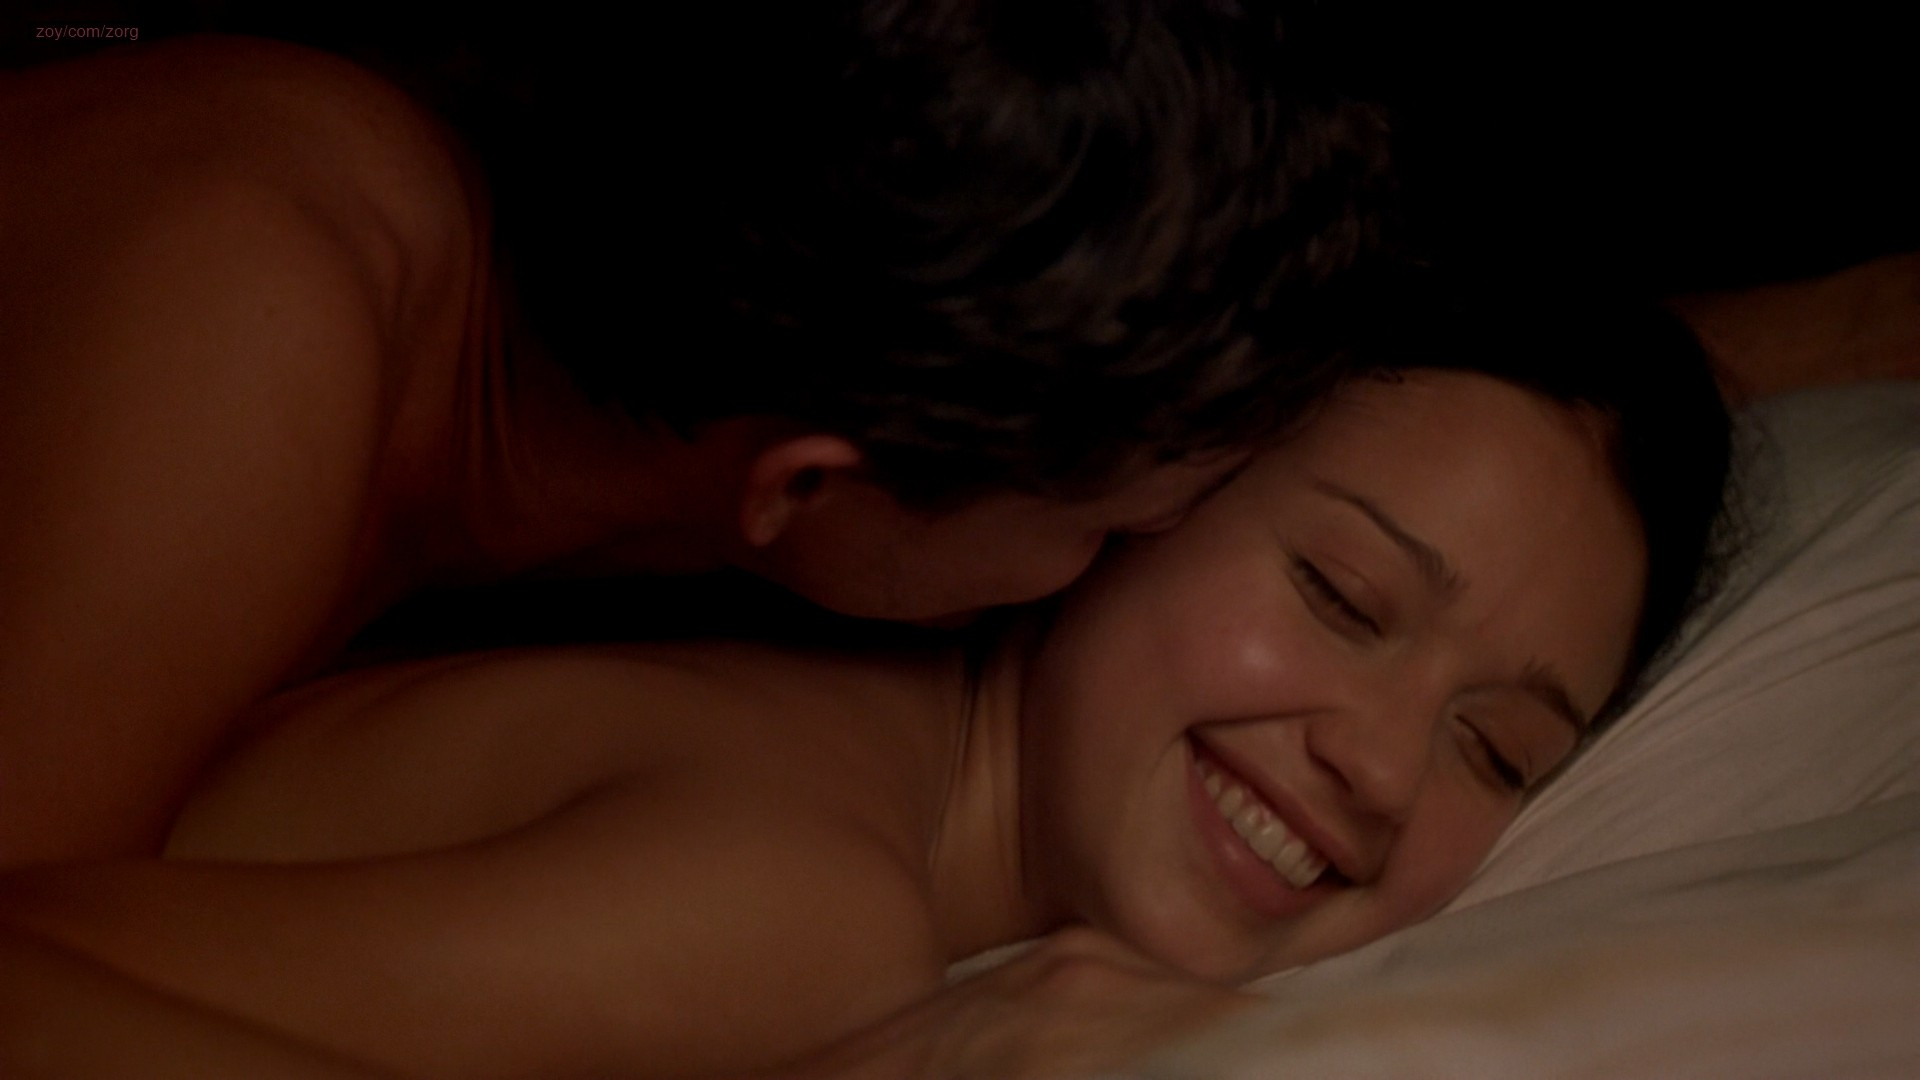 Emily Mortimer nude topless and Jessica Alba not nude hot and sexy - The Sleeping Dictionary (2003) HD 1080p (7)